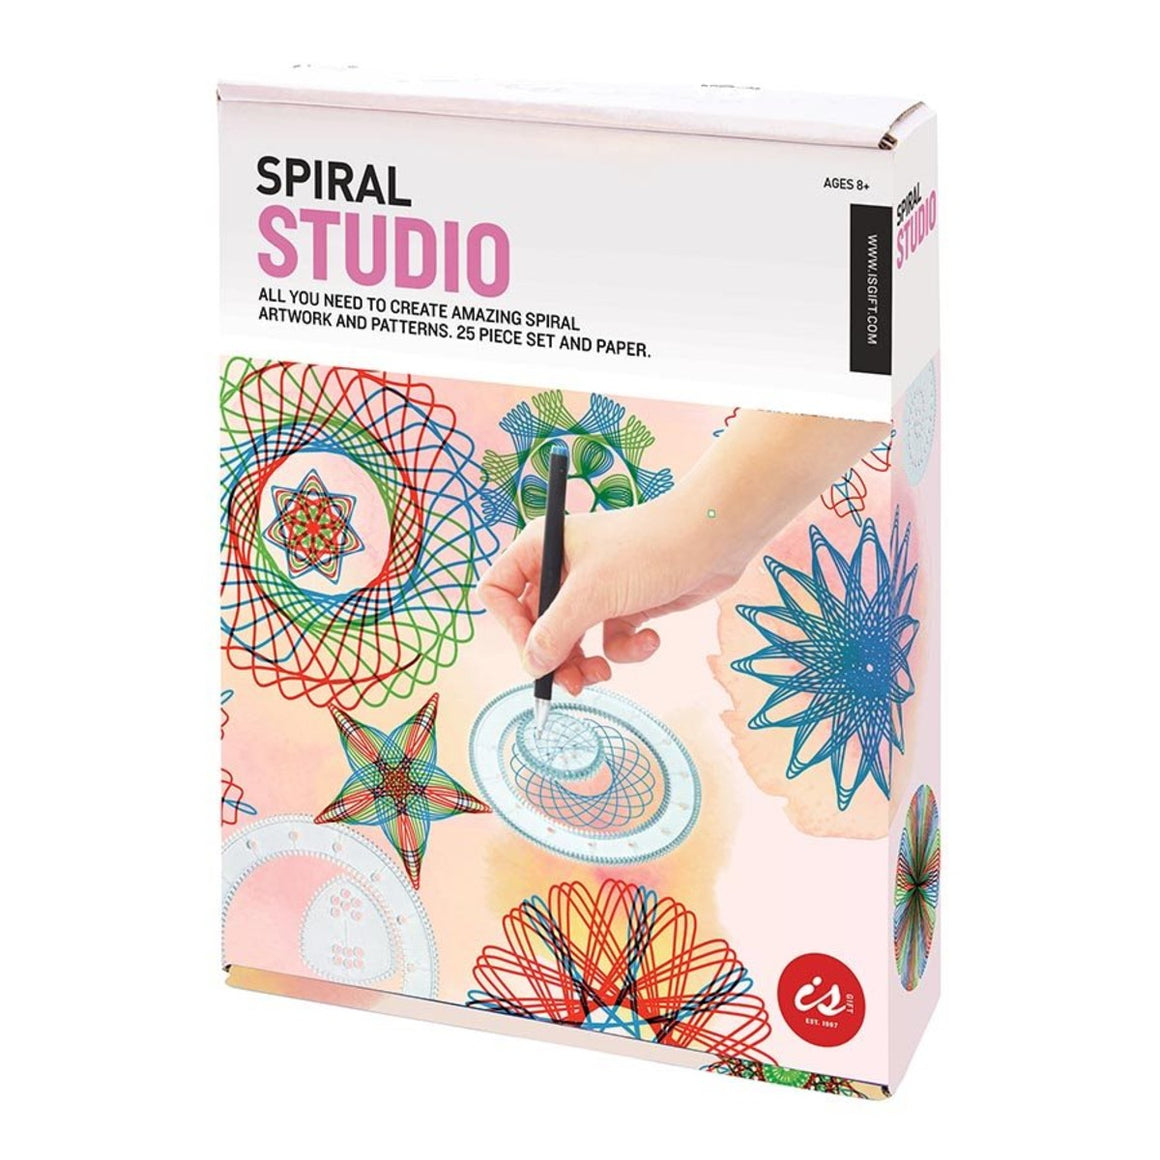 "A box kit "" Spiral Studio"", The cover shows a hand drawing spirals with the assistance of the tools in the kit."